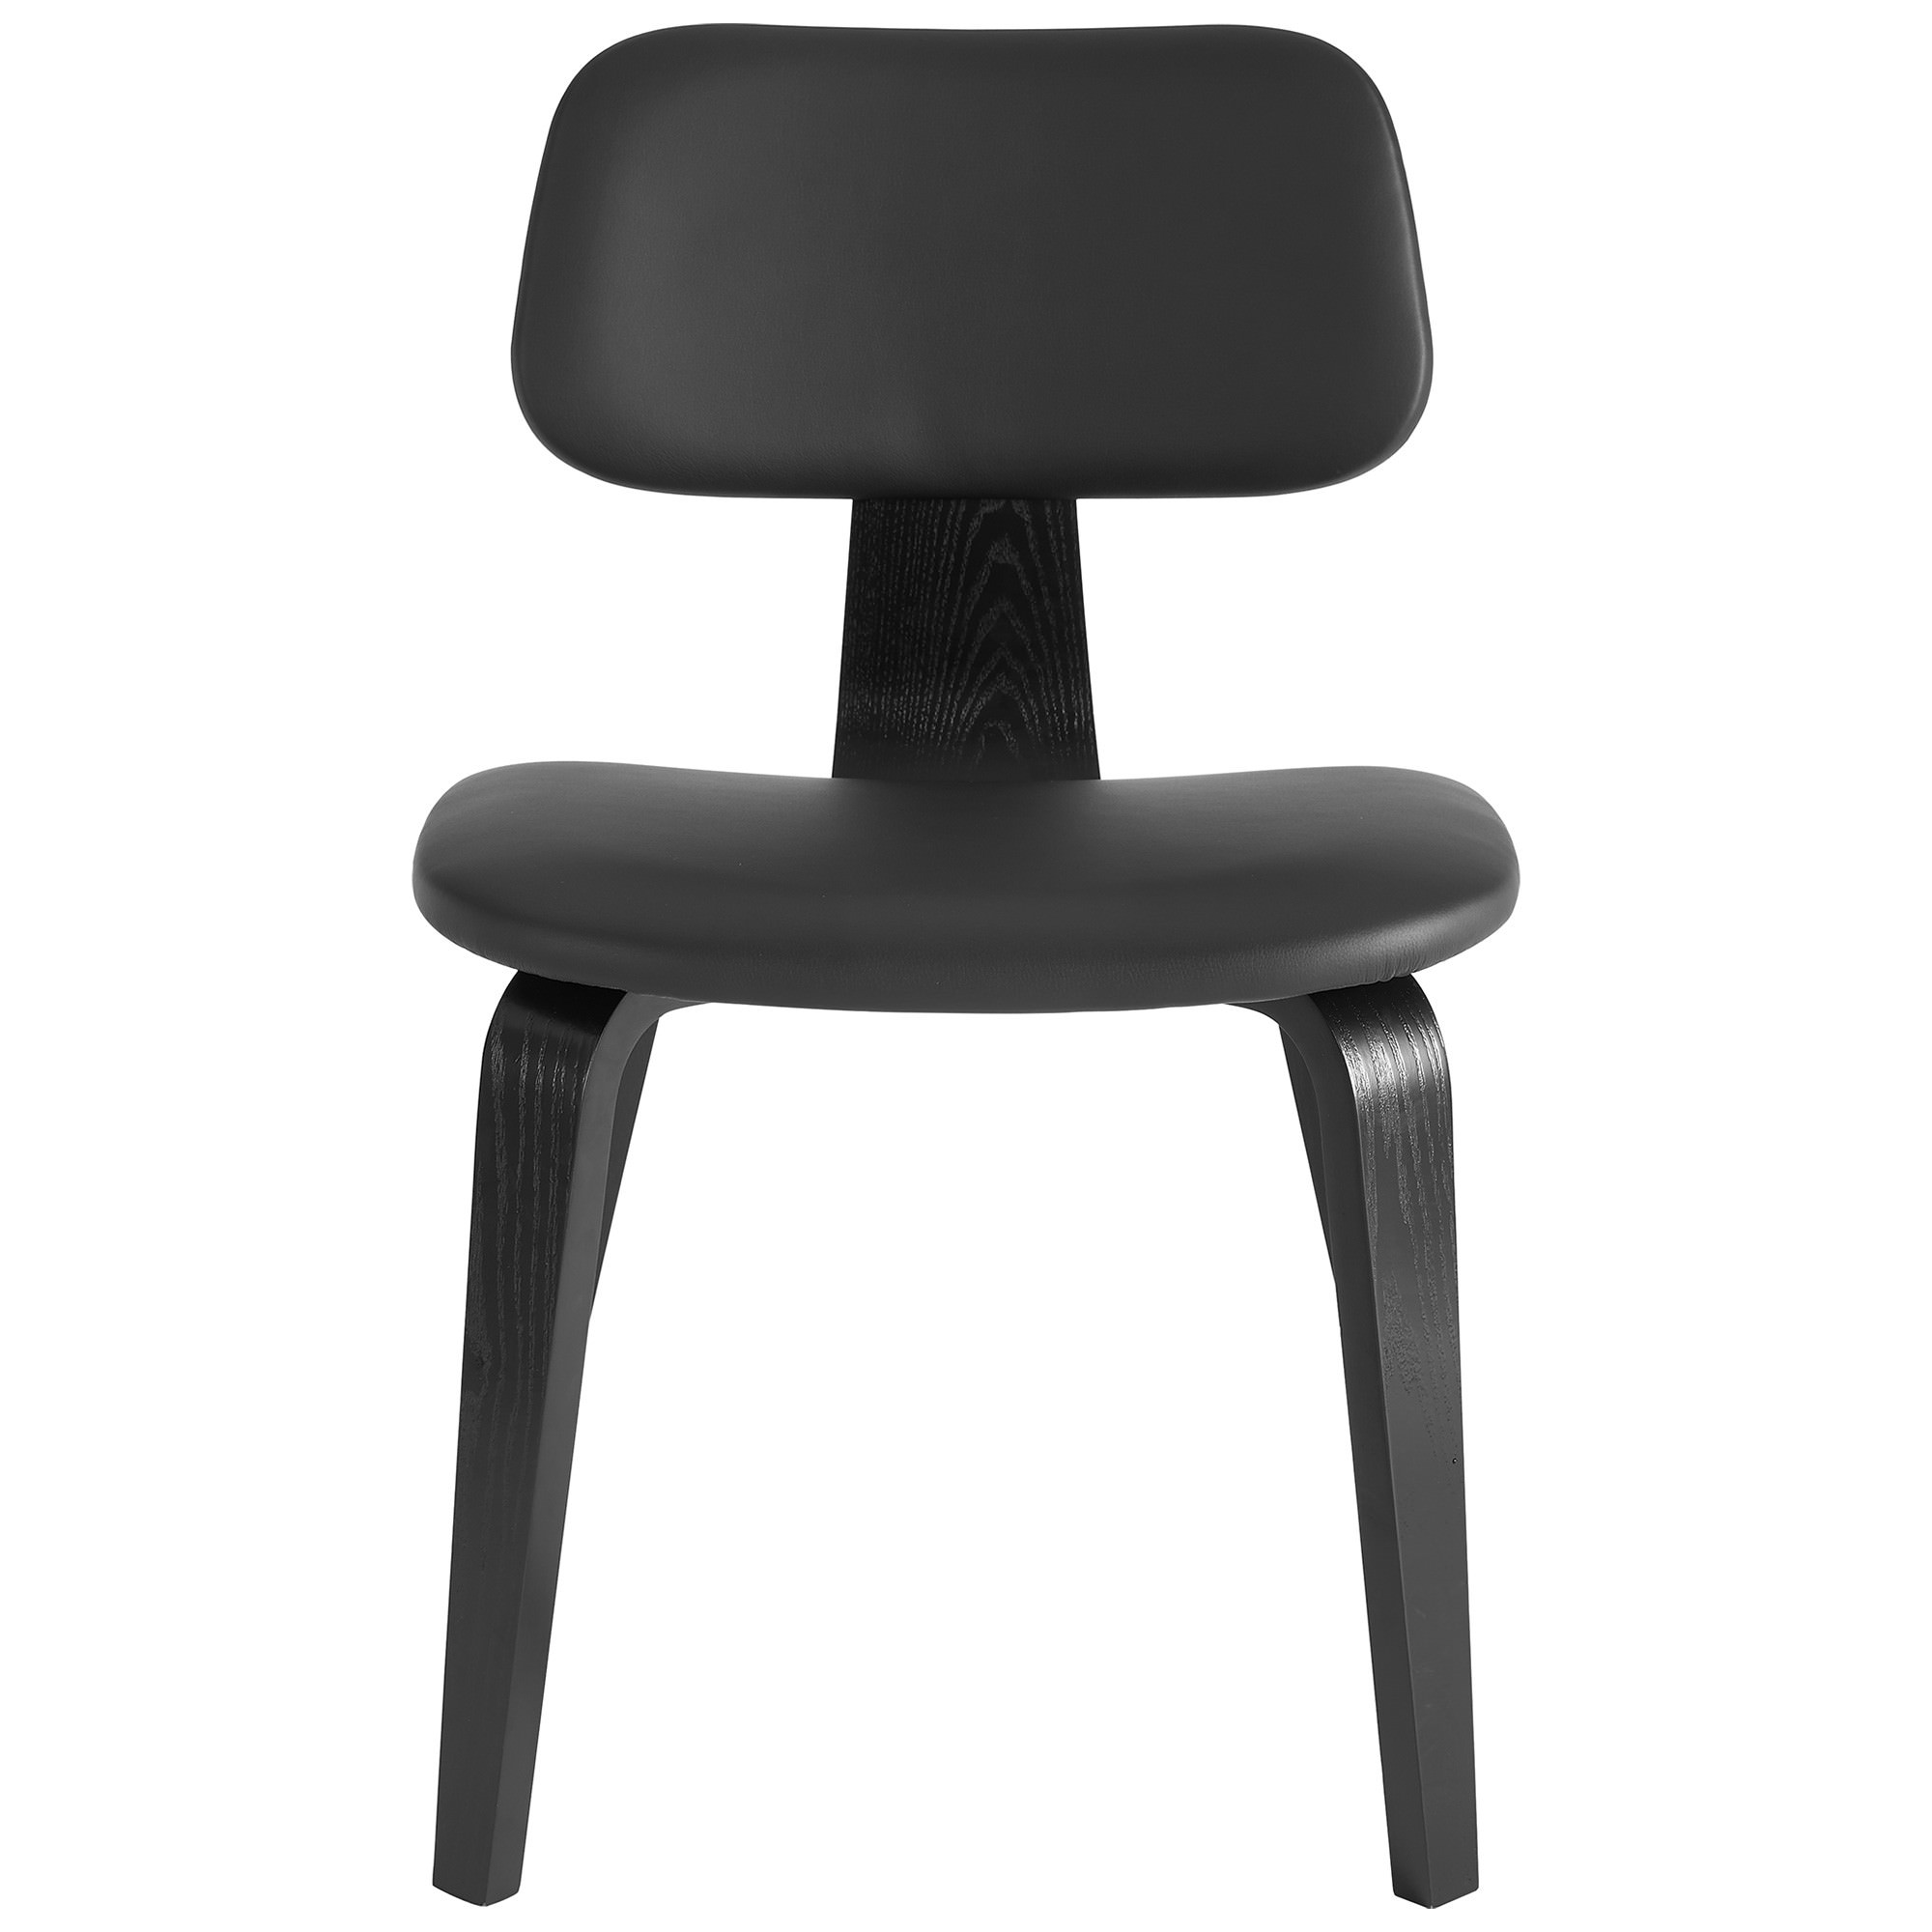 Grover PU Leather & Wooden Dining Chair